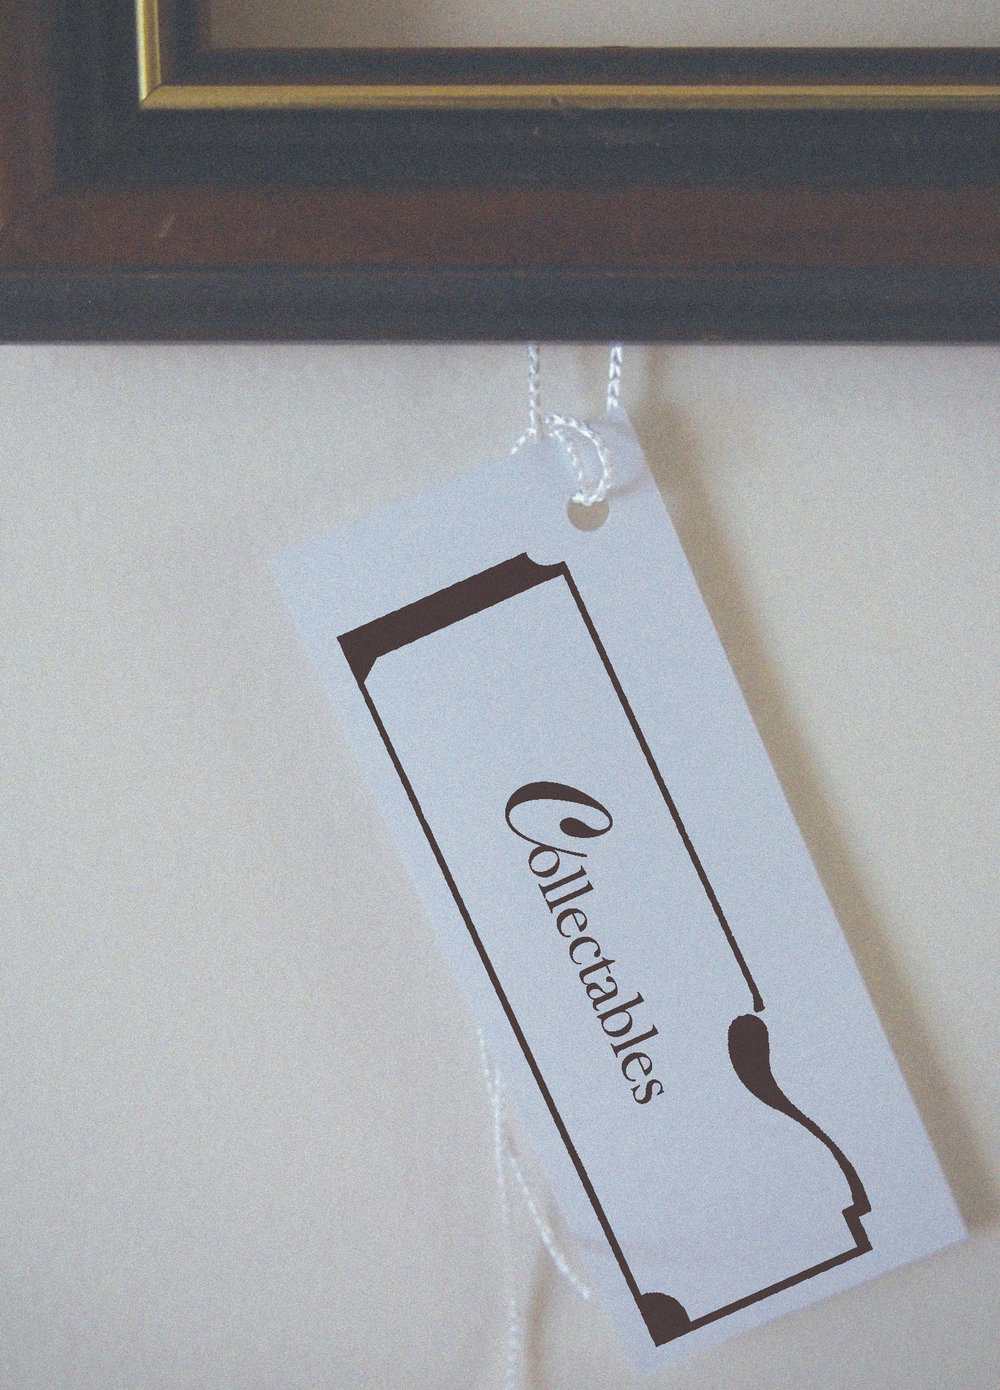 [Collectables] Creation of a brand identity for Collectables, a part of Sadigray Boutique. [Above front of label]